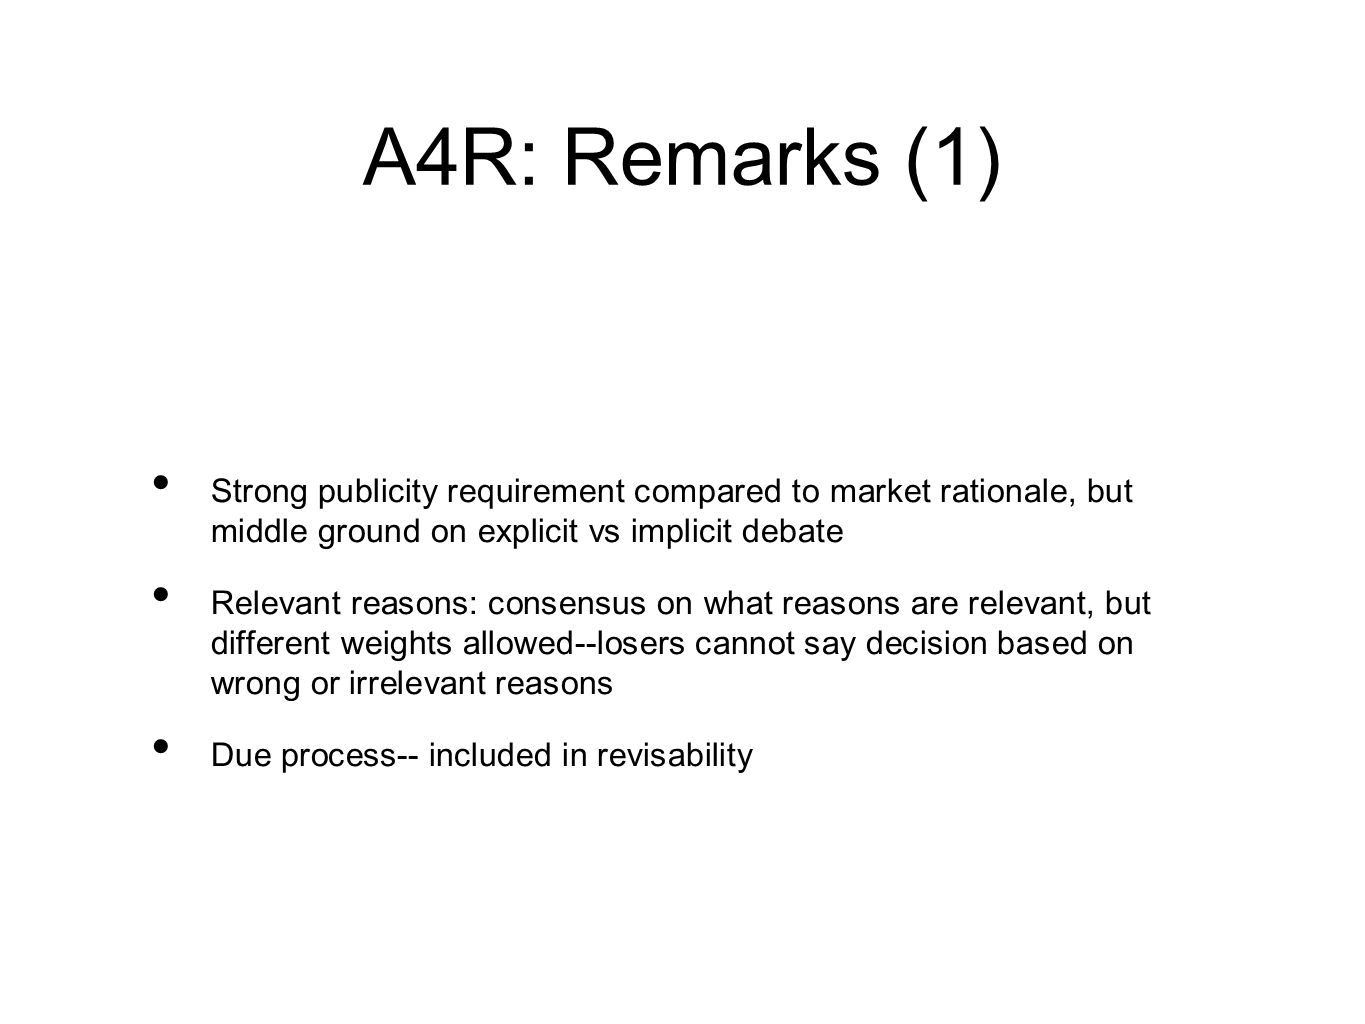 A4R: Remarks (1) Strong publicity requirement compared to market rationale, but middle ground on explicit vs implicit debate Relevant reasons: consensus on what reasons are relevant, but different weights allowed--losers cannot say decision based on wrong or irrelevant reasons Due process-- included in revisability